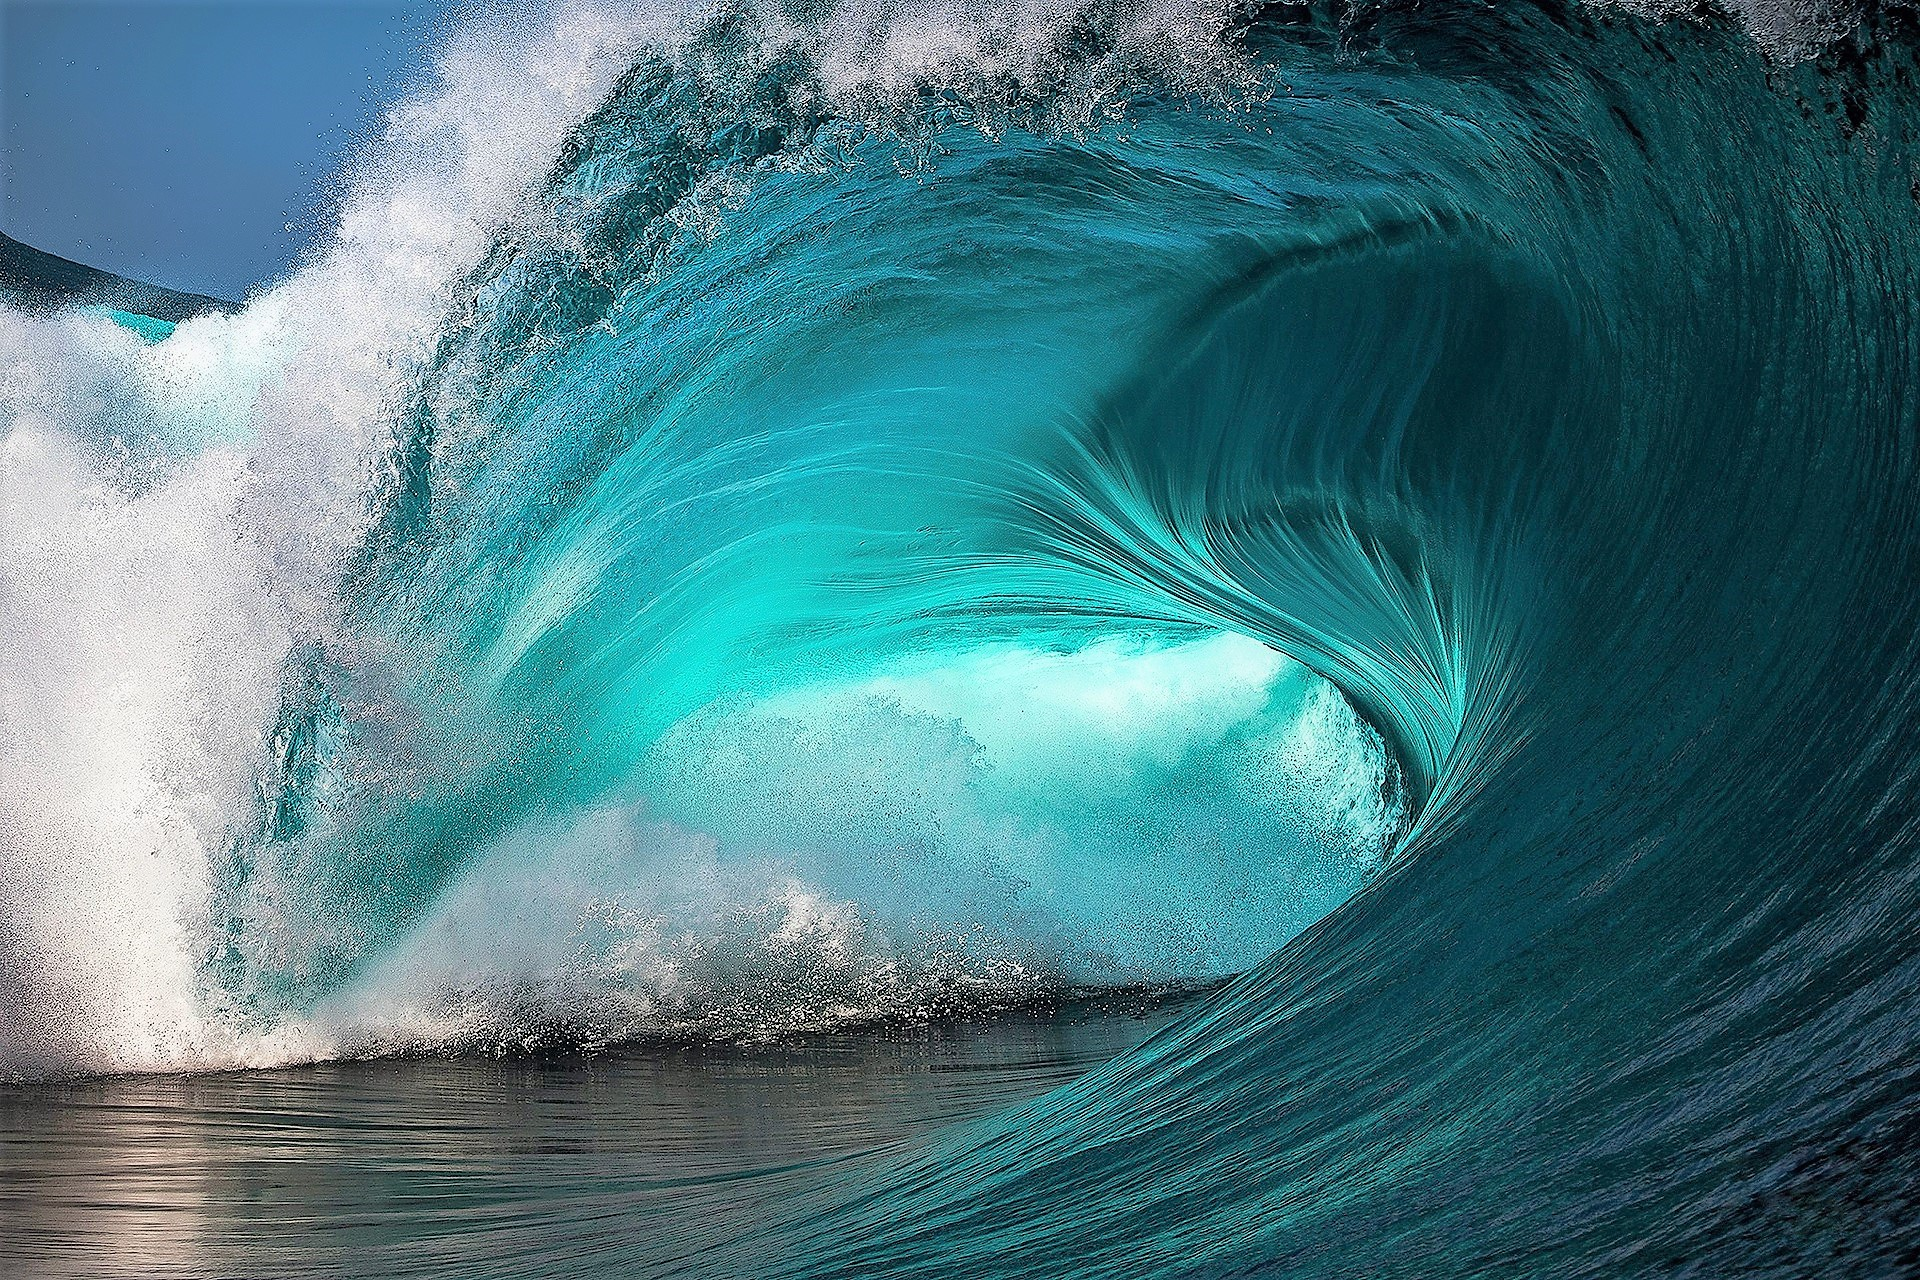 Giant wave hd wallpaper background image 1920x1280 id 927576 wallpaper abyss - Wave pics wallpaper ...